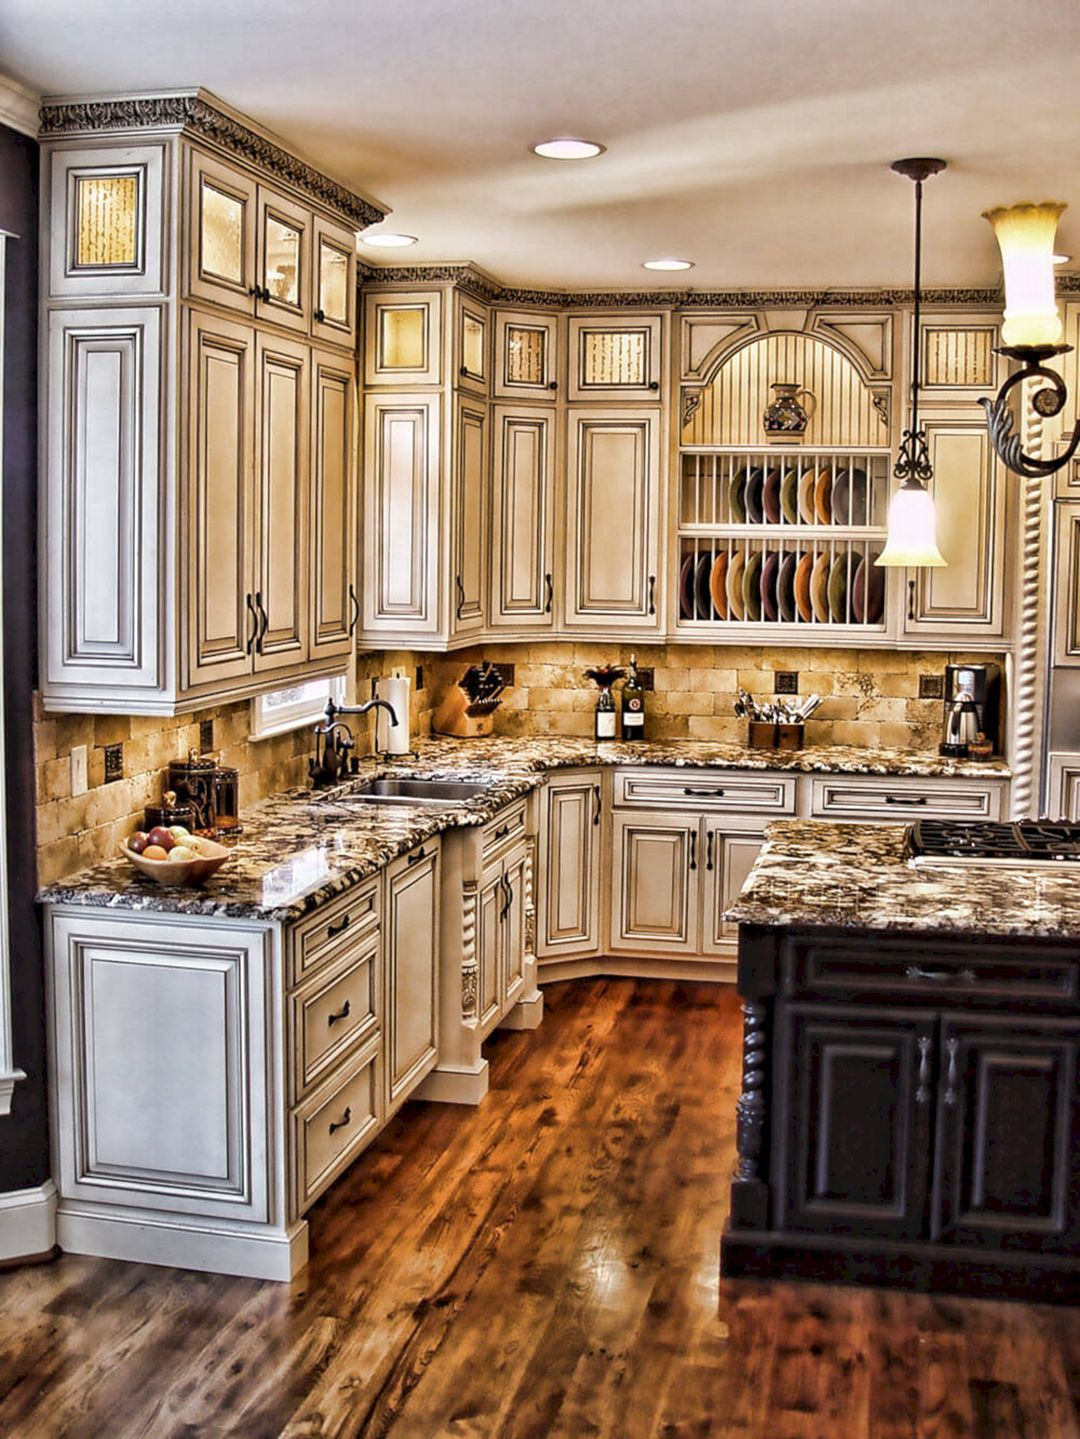 20+ Amazing Rustic Kitchen Cabinet Design Ideas You Should Know That! #rustickitchendesigns